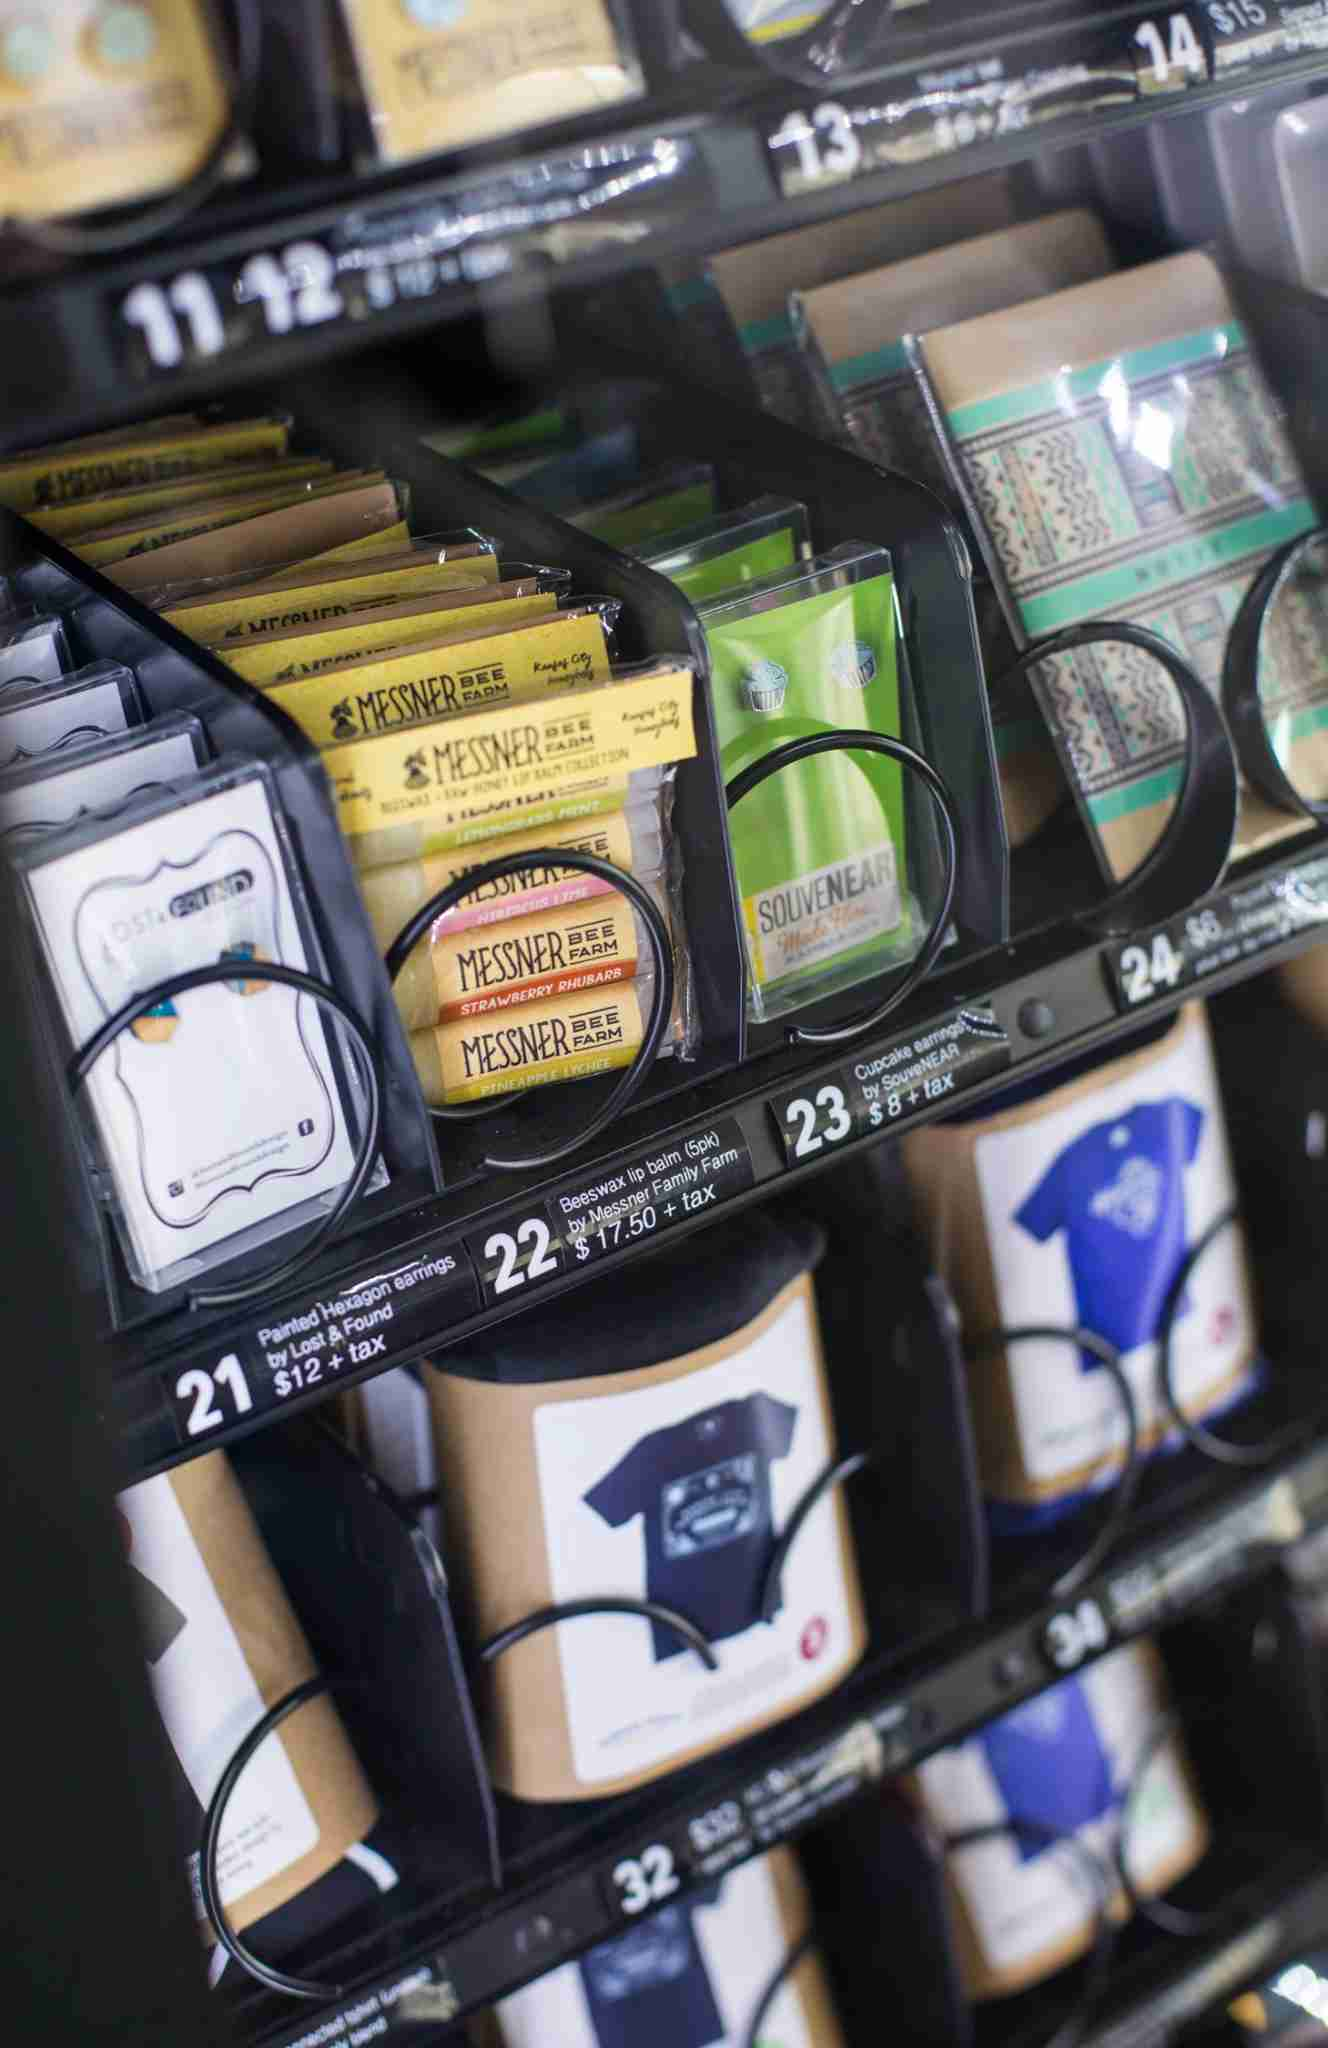 Travelers can now shop for souvenirs via vending machines at a growing number of US airports. (Image courtesy of Sally Morrow photography)